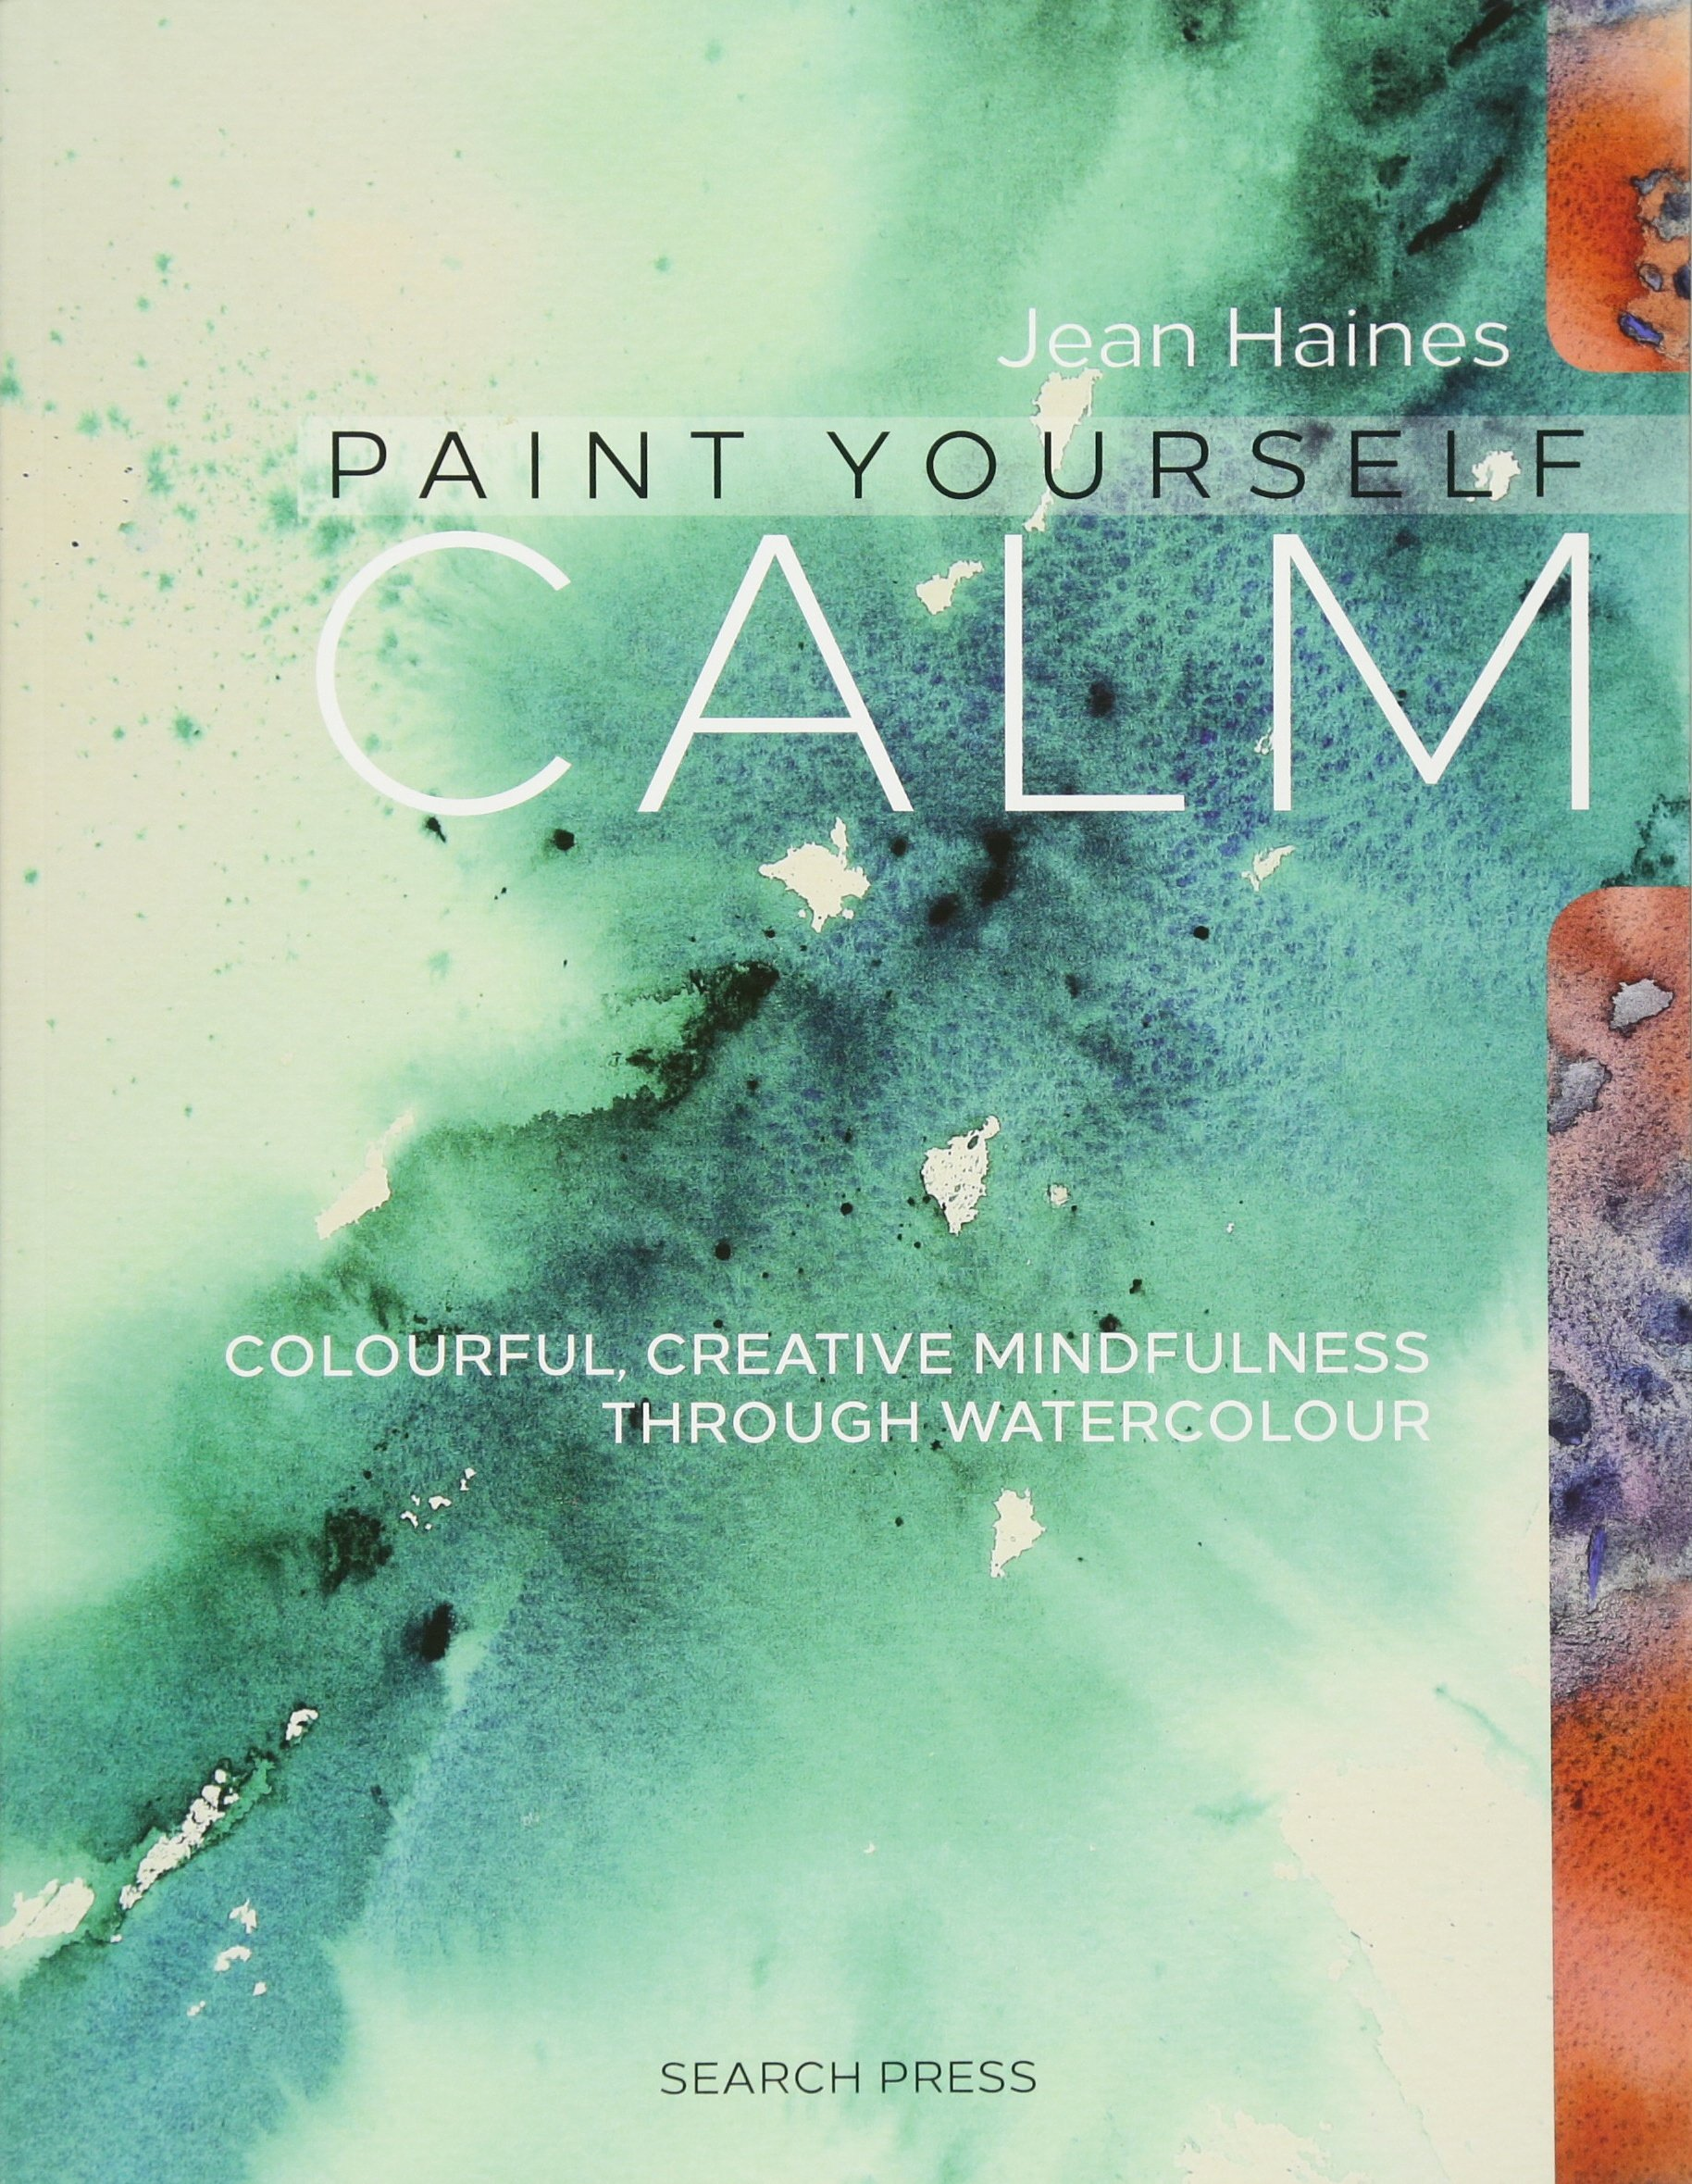 Watercolor books by search press - Amazon Com Jean Haines Paint Yourself Calm Colourful Creative Mindfulness Through Watercolour 9781782212829 Jean Haines Books